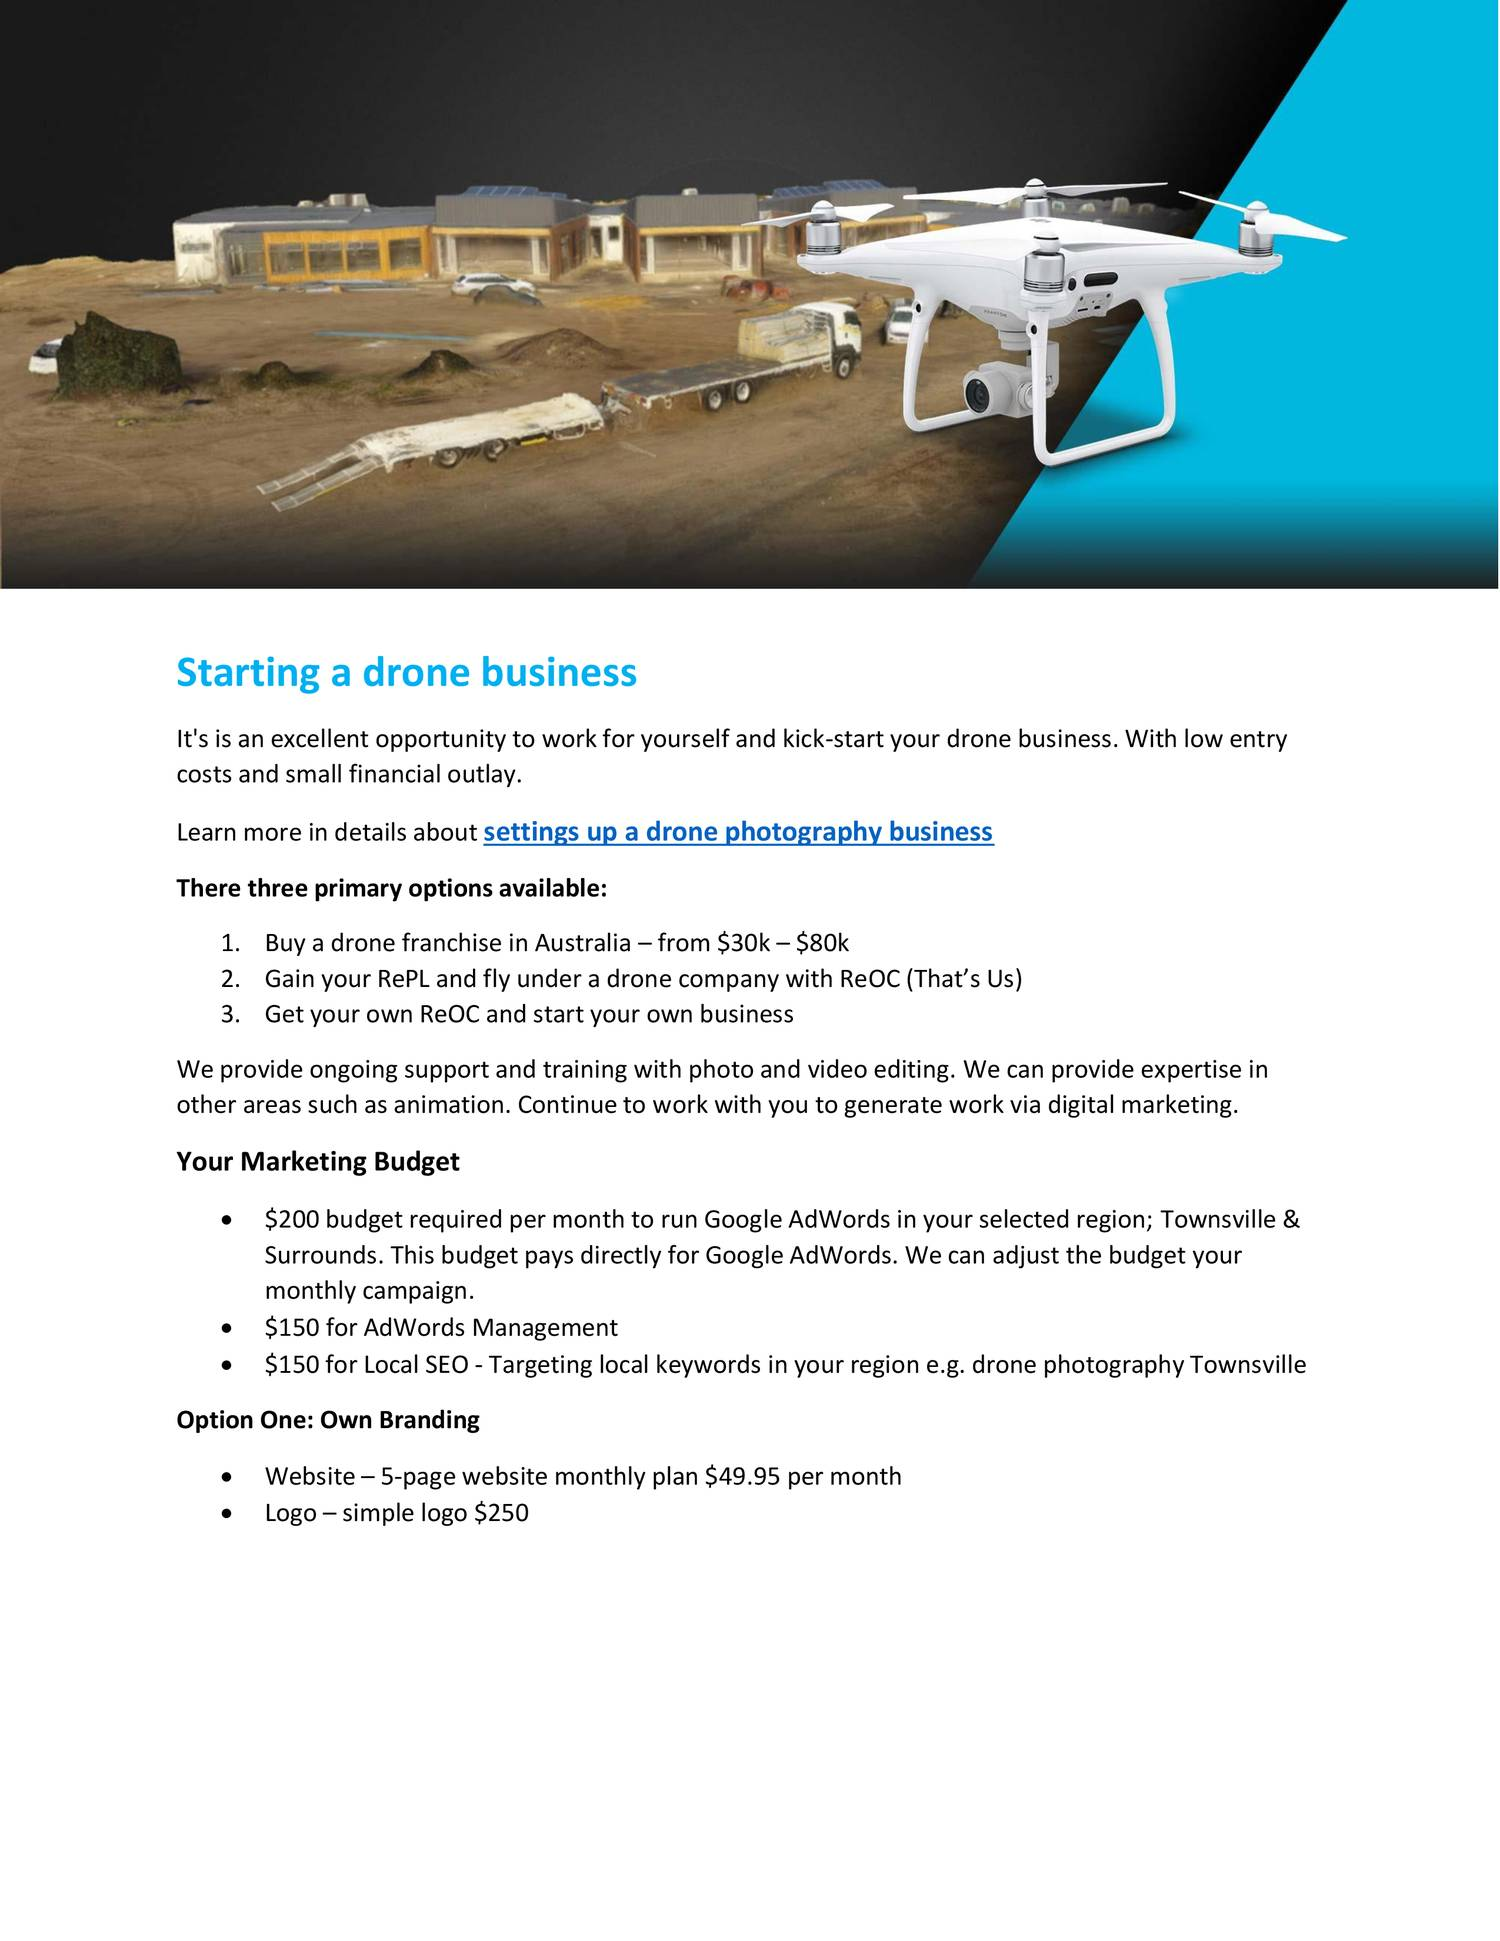 Setting Up a Drone Photography Business pdf | DocDroid